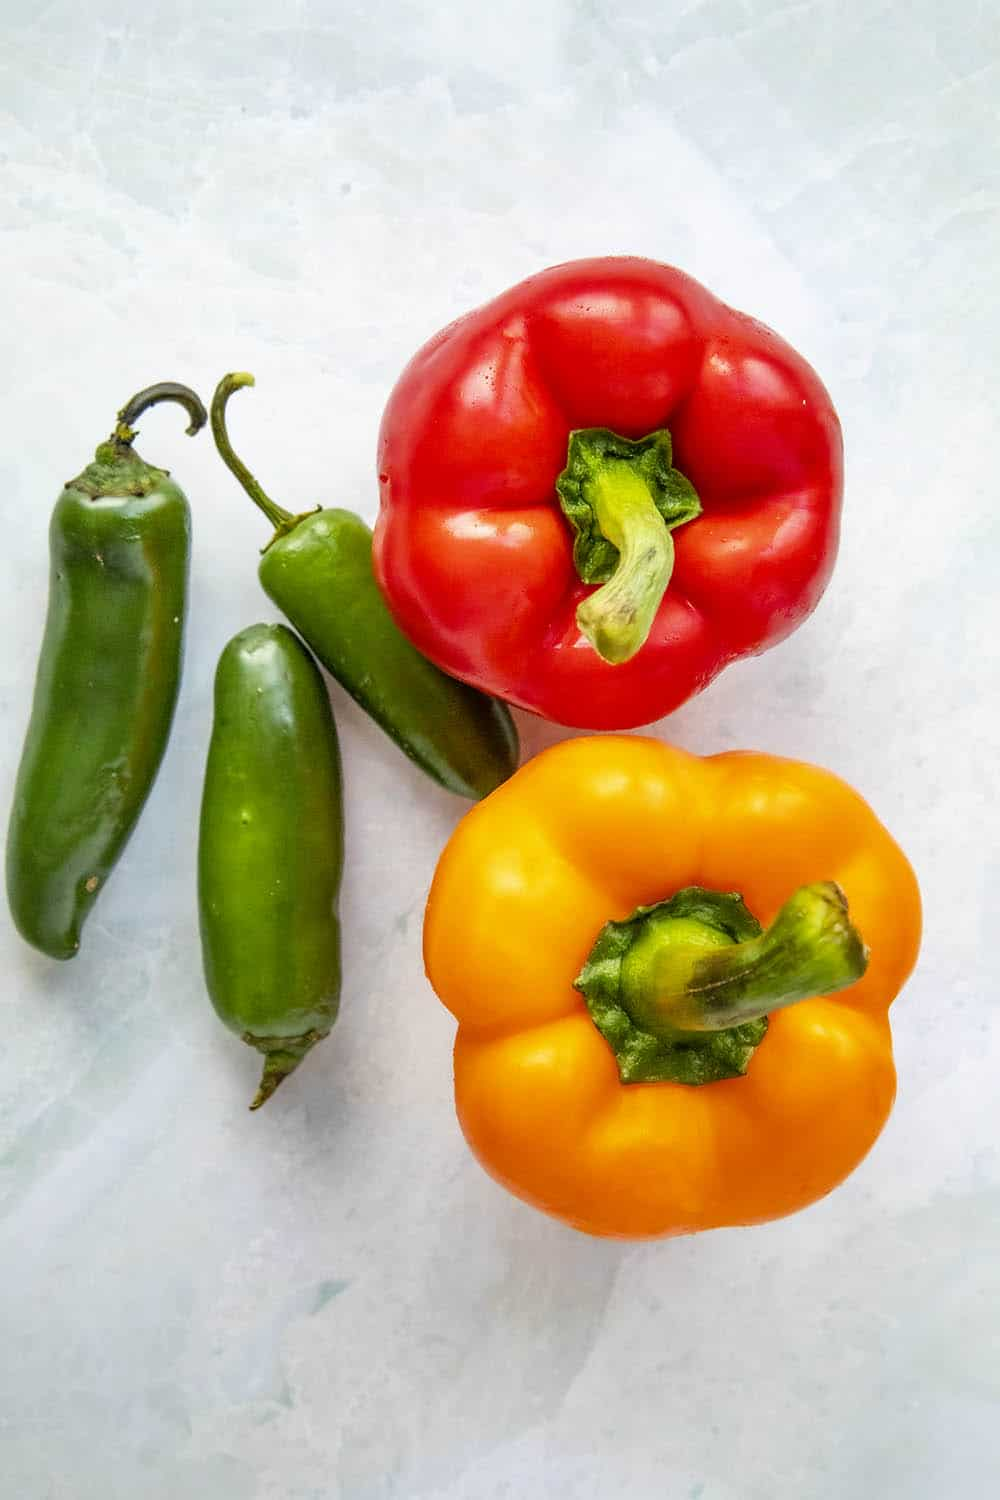 Bell peppers and jalapeno peppers for making sausage and peppers for dinner